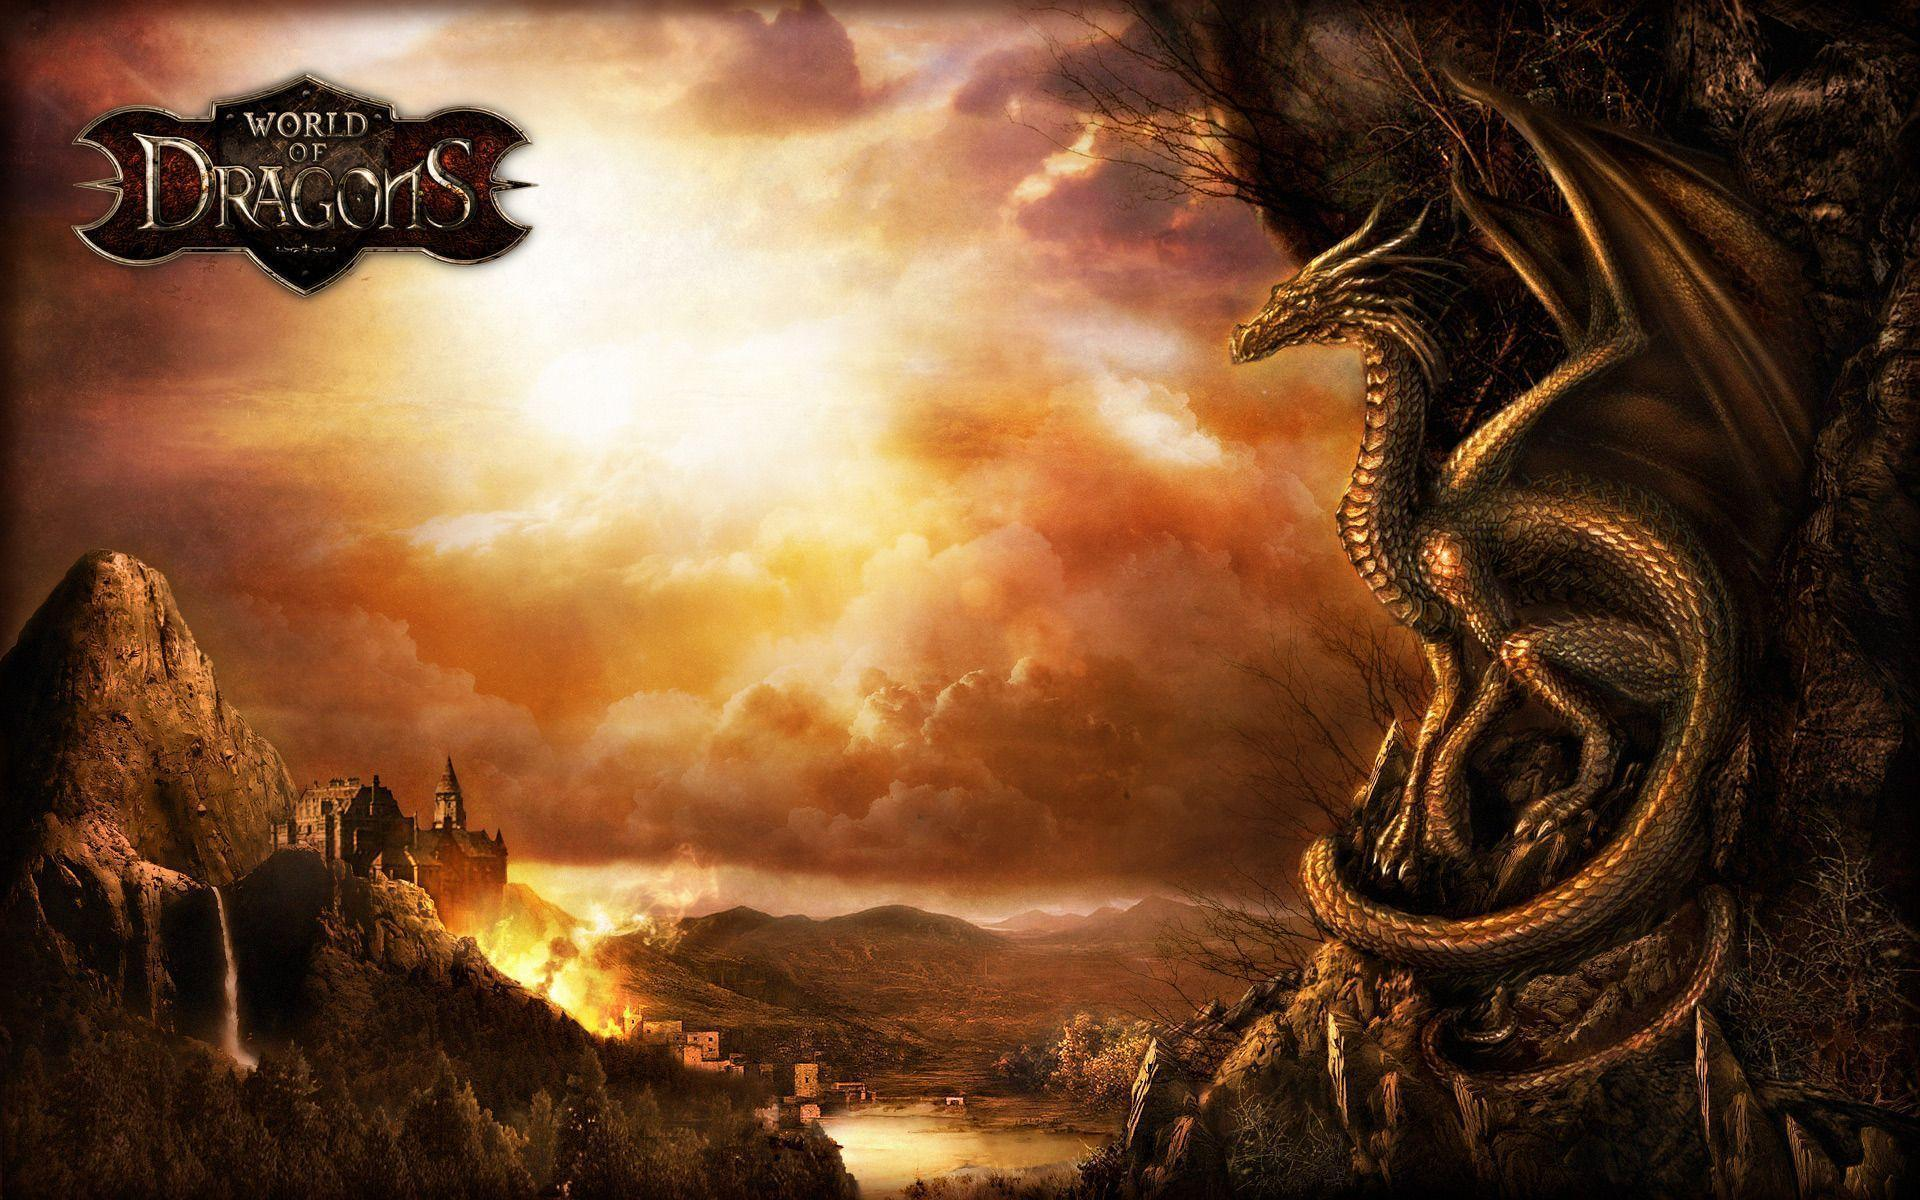 Anime 2014 Wallpaper Wallpapers Of Dragons Wallpaper Cave